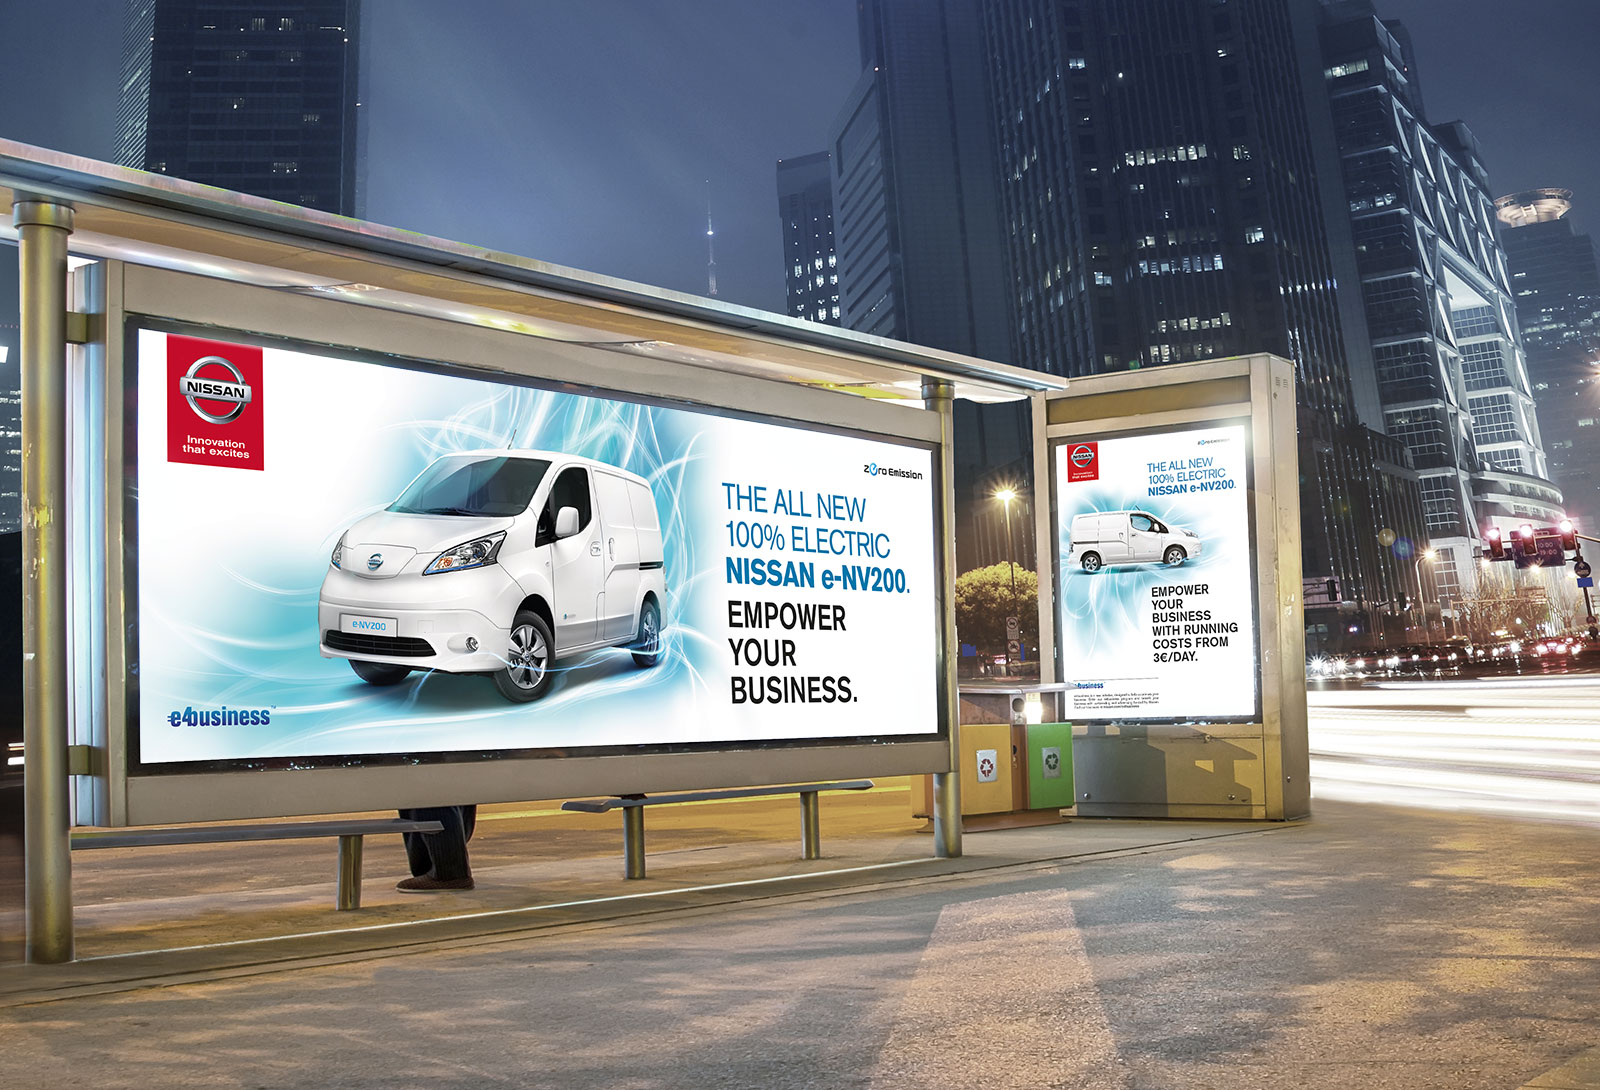 billboards-env200.jpg